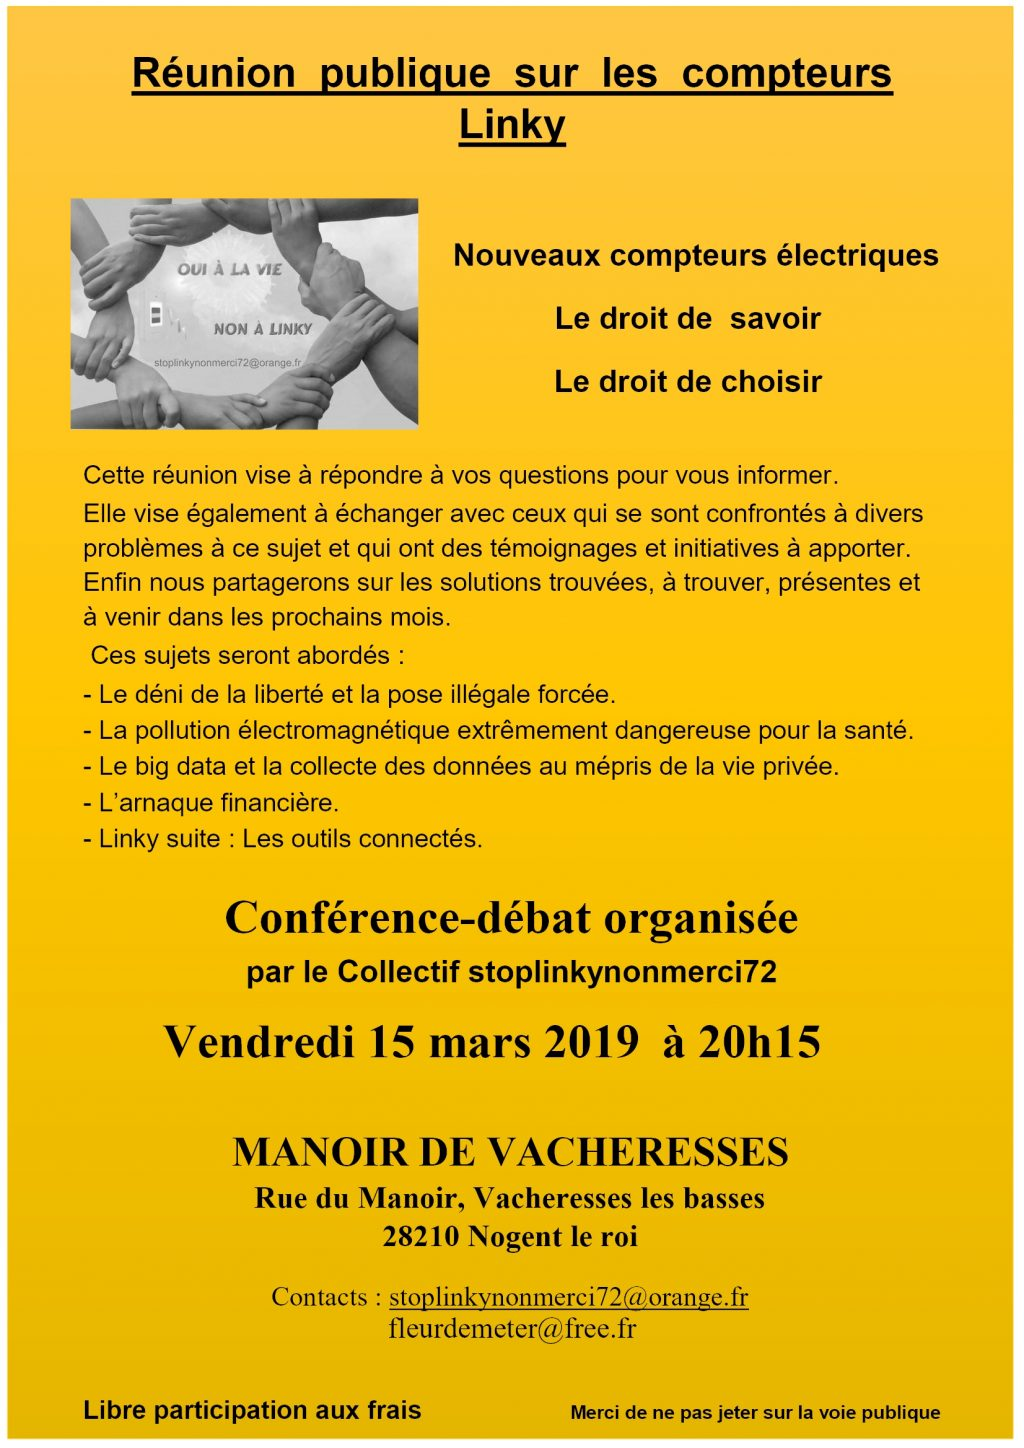 Linky 15-03-2019 Reunion publique Vacheresses [Affiche]